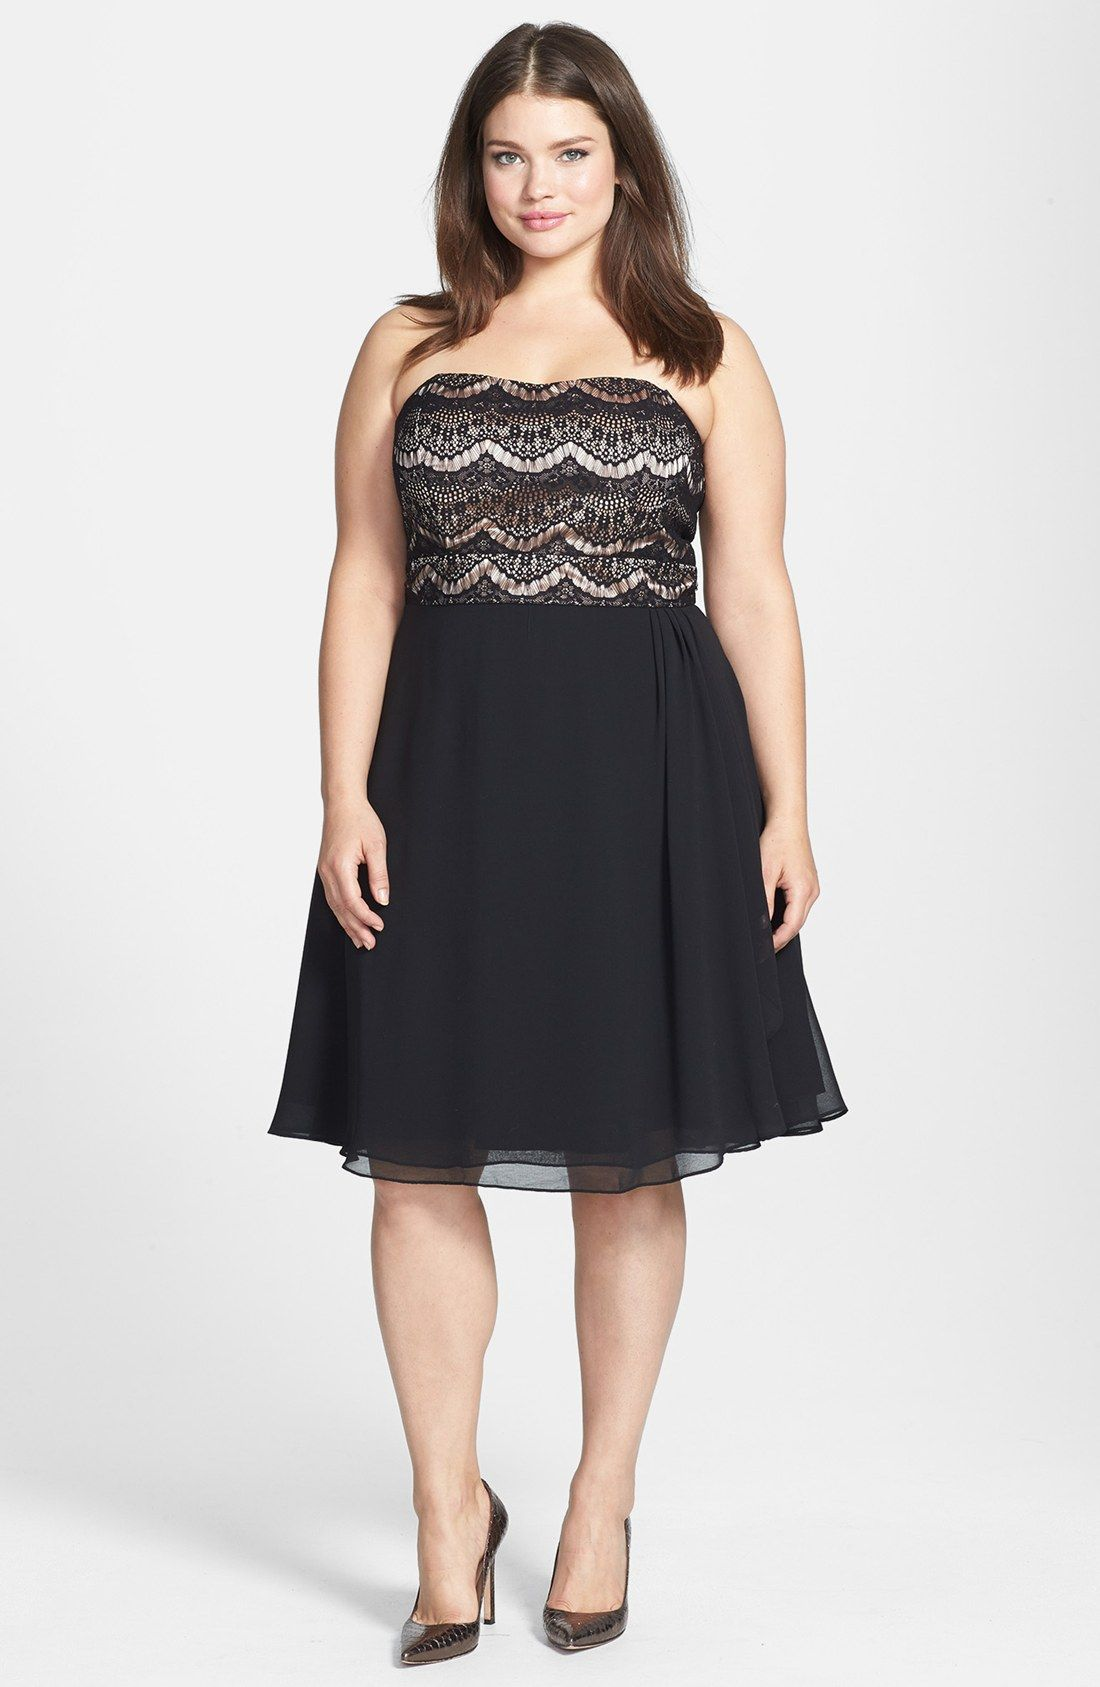 City chic mixed media fit flare dress plus size plus